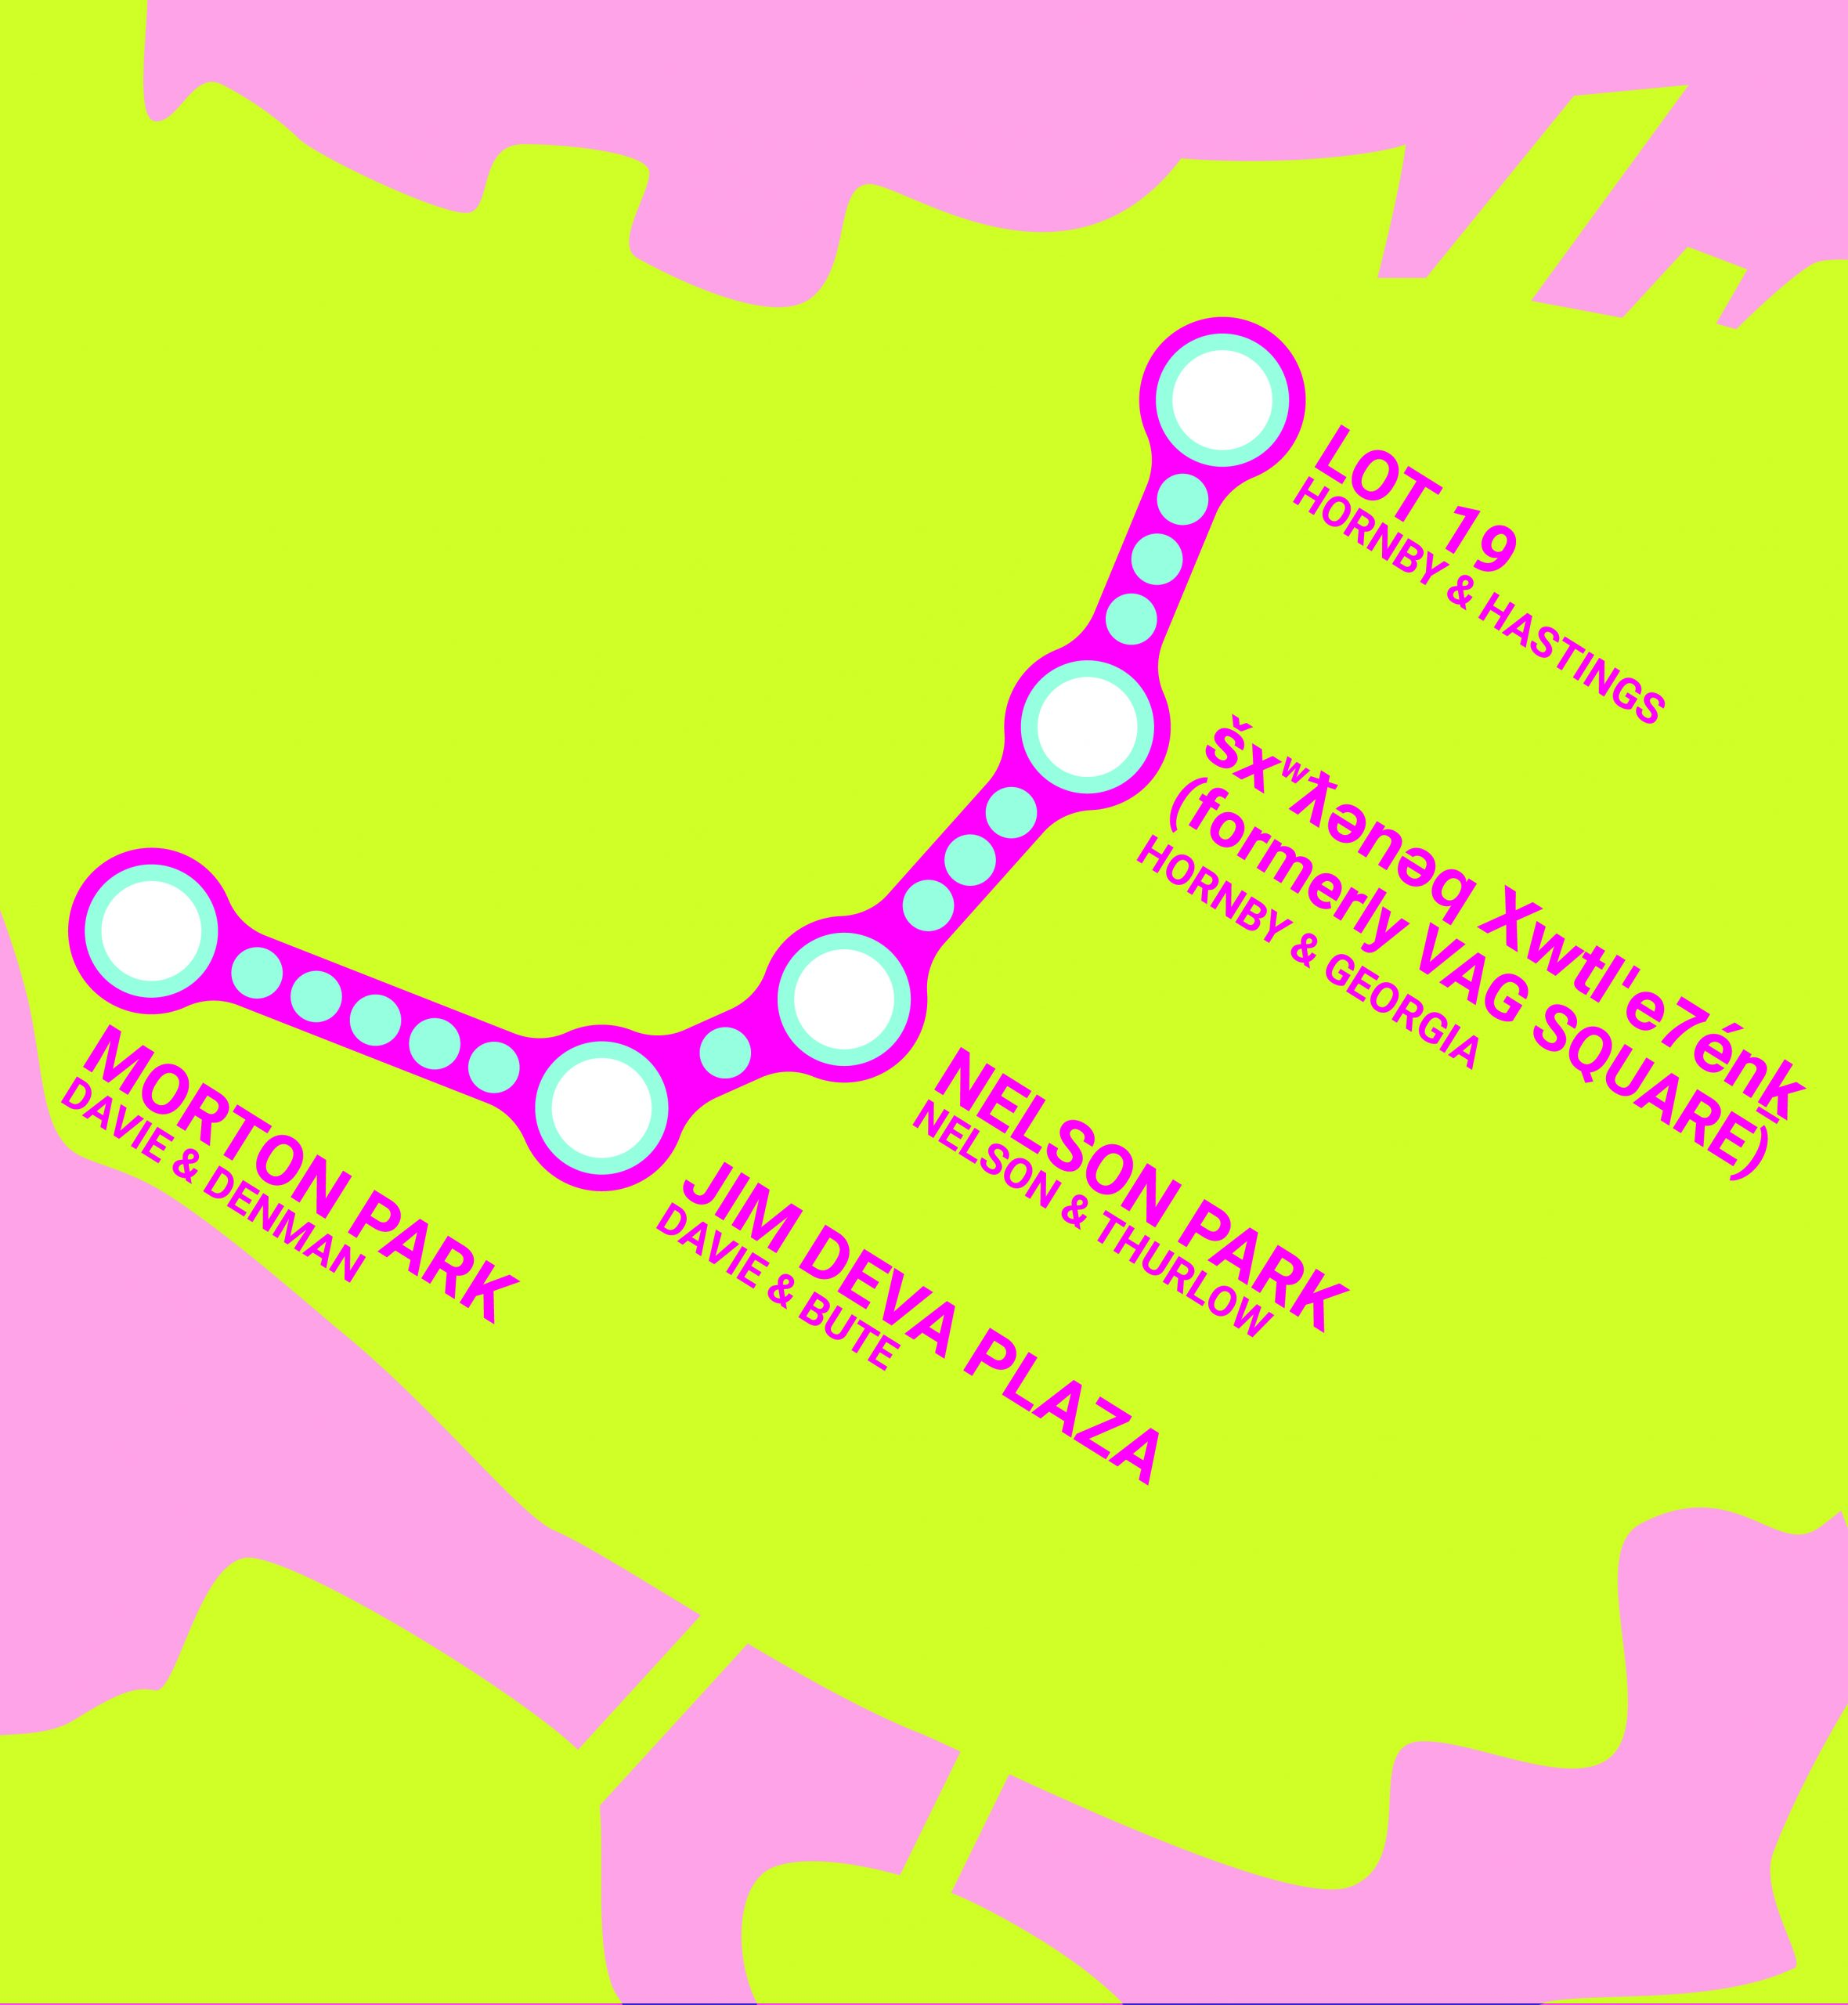 """Stylized map depicting Vancouver in Yellow. Locations of Pride Art Walk stops shown in Pink near white bubbles with blue borders - a pink outline traces the route. Text reads: """"Lot 19, Hornby & Hastings; šxʷƛ̓ənəq Xwtl'e7énk Square (Formerly VAG square), Hornby & Georgia; Nelson Park, Nelson&Thurlow;Jim Deva Plaza, Davie&Bute; Morton Park, Davie&Denman"""